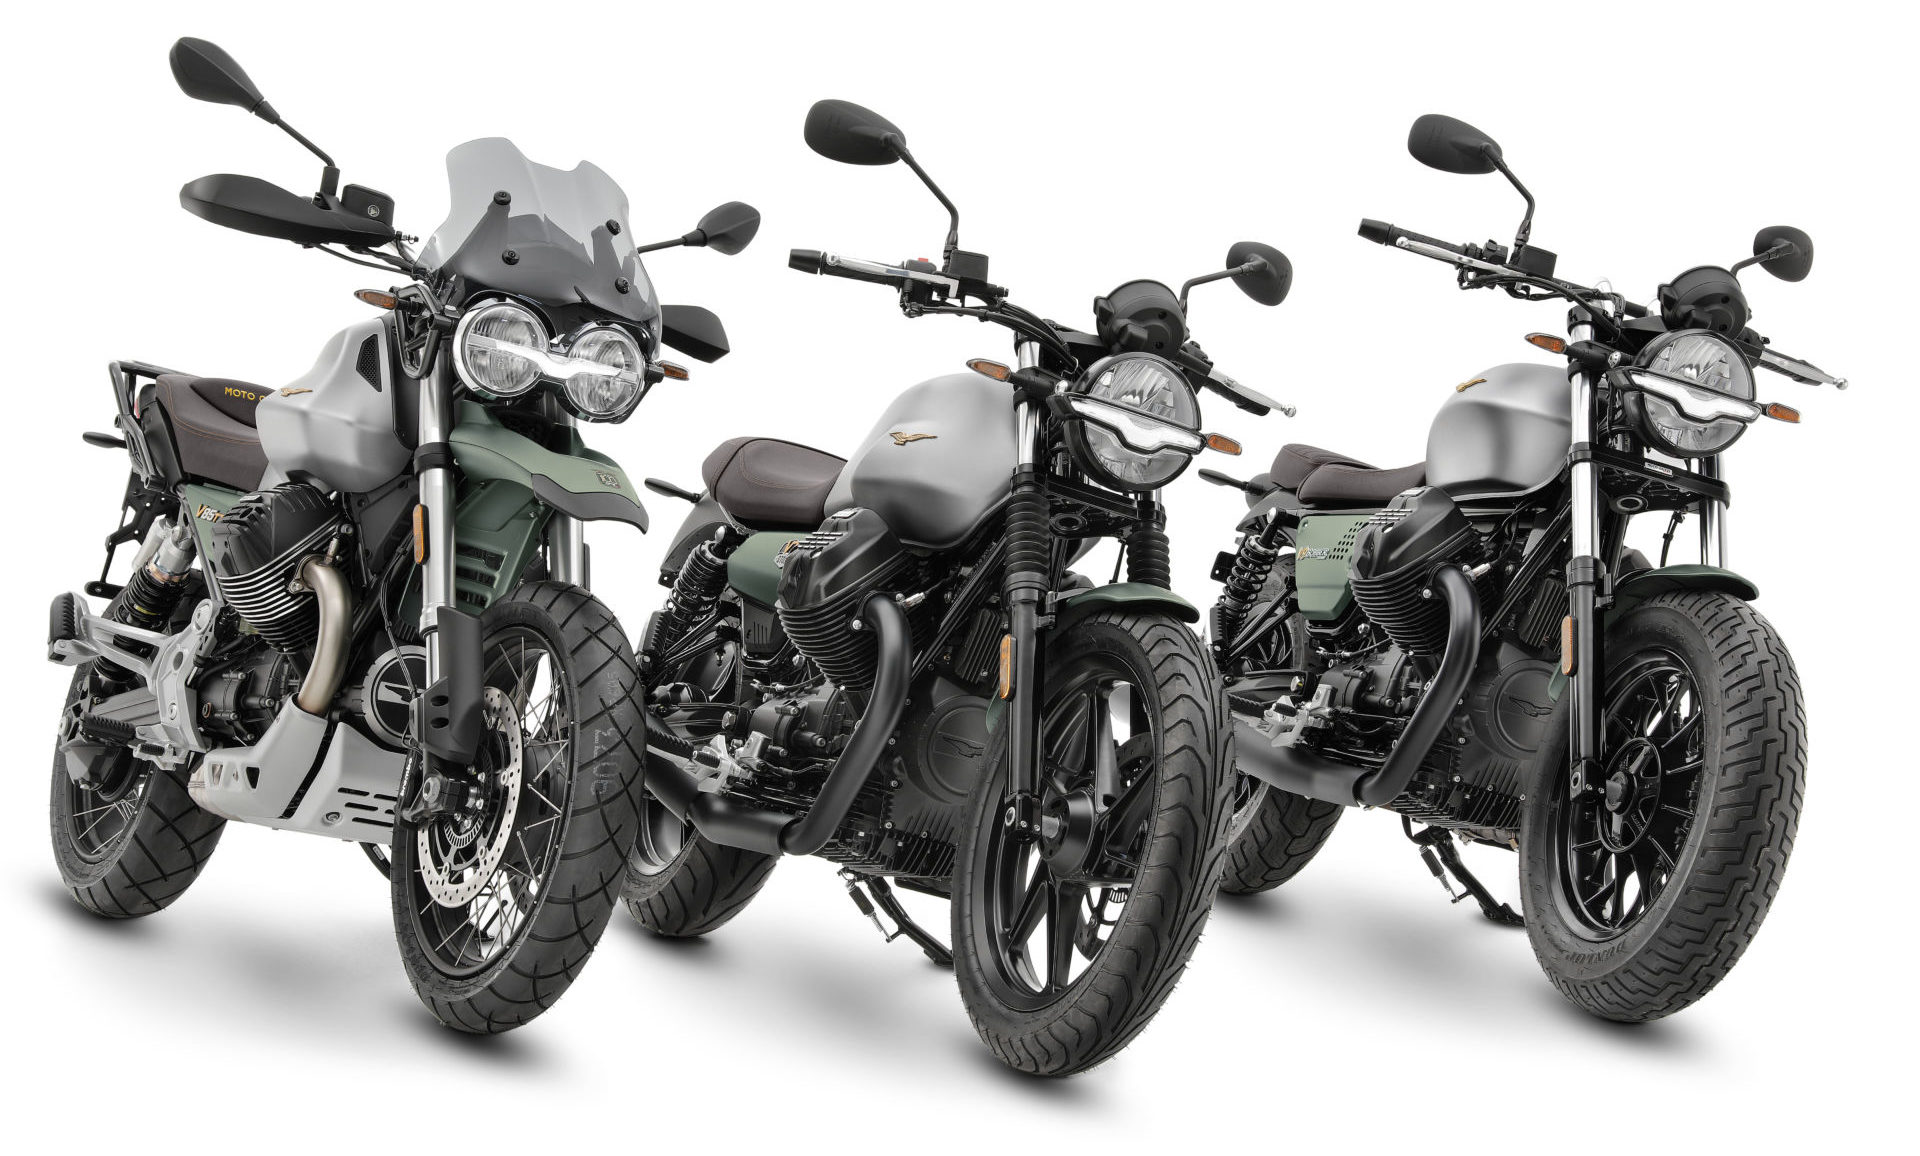 To celebrate its 100th anniversary, Moto Guzzi is producing selected 2021 models in a